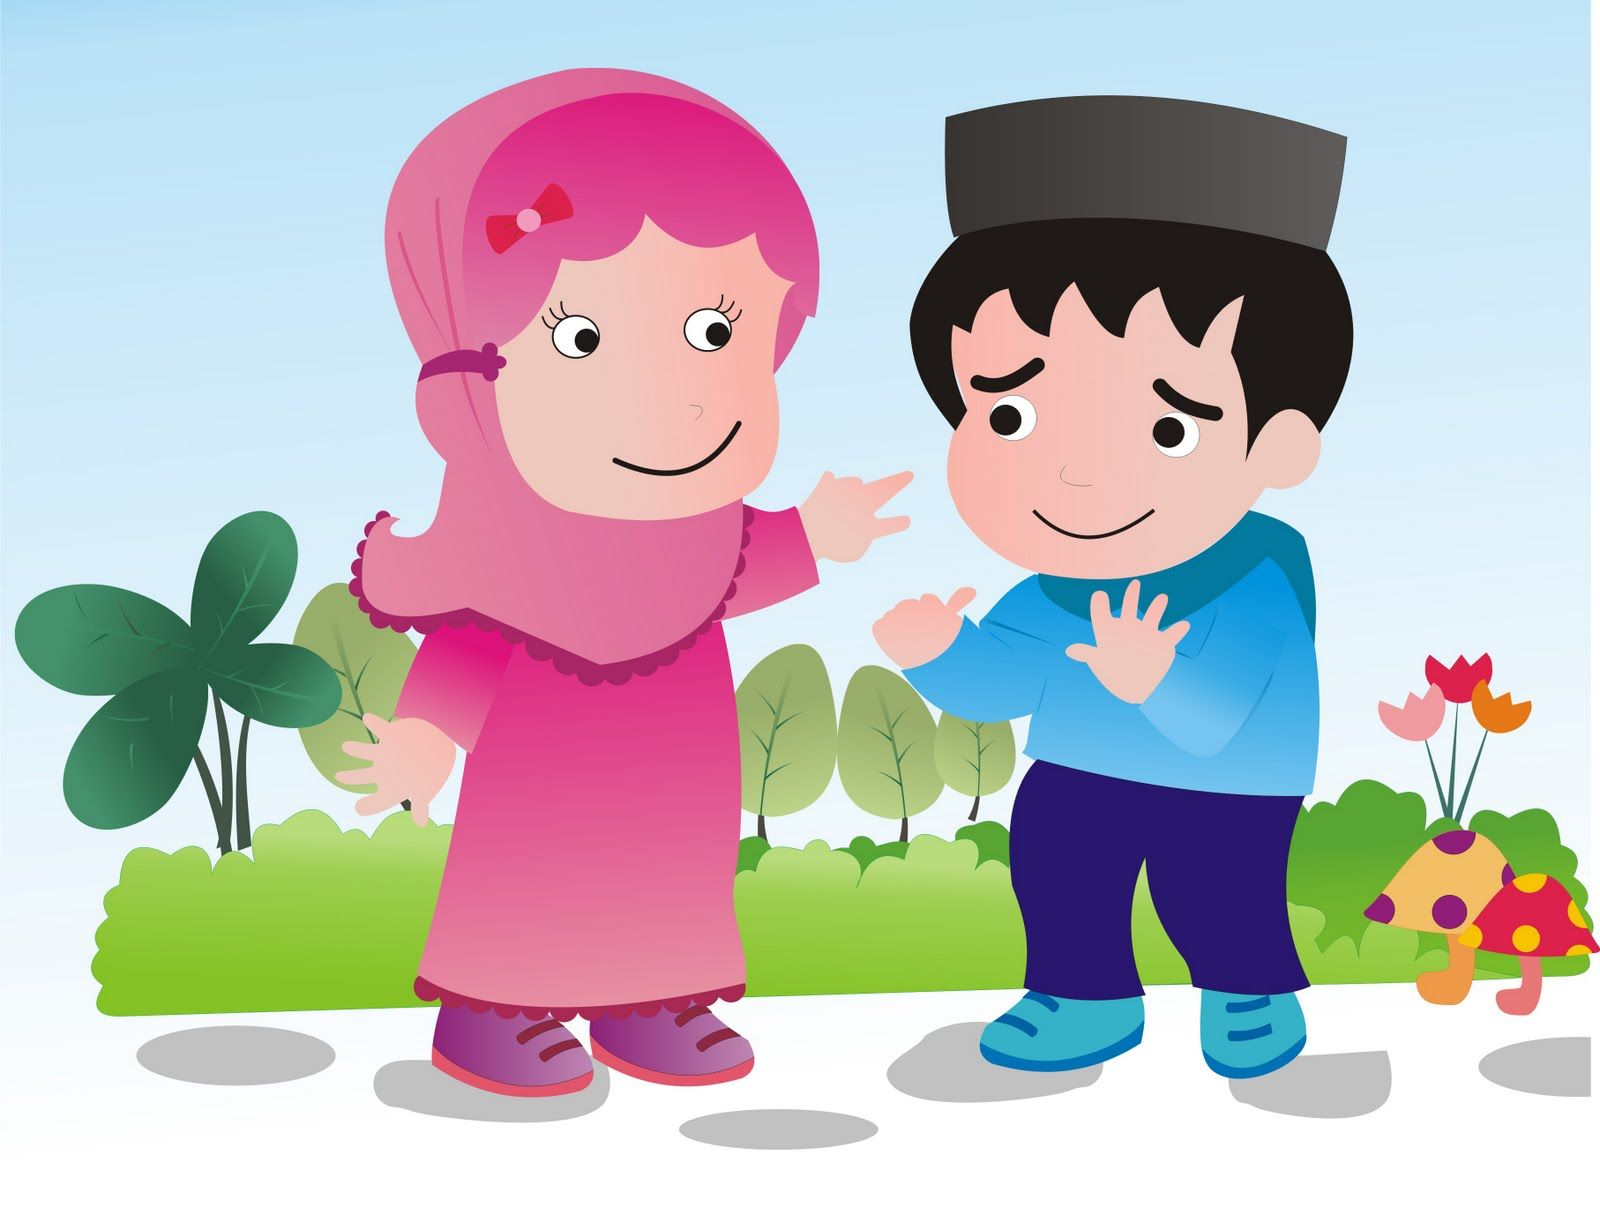 Anak Hilang Ketika Tarawih Wanita Ini together with Persamaan Peribahasa Semai Dan Peribahasa Melayu likewise Warnai Gambar Dora besides Binaan Predikat Ayat Tunggal additionally K Cartoon blogspot. on monyet menari